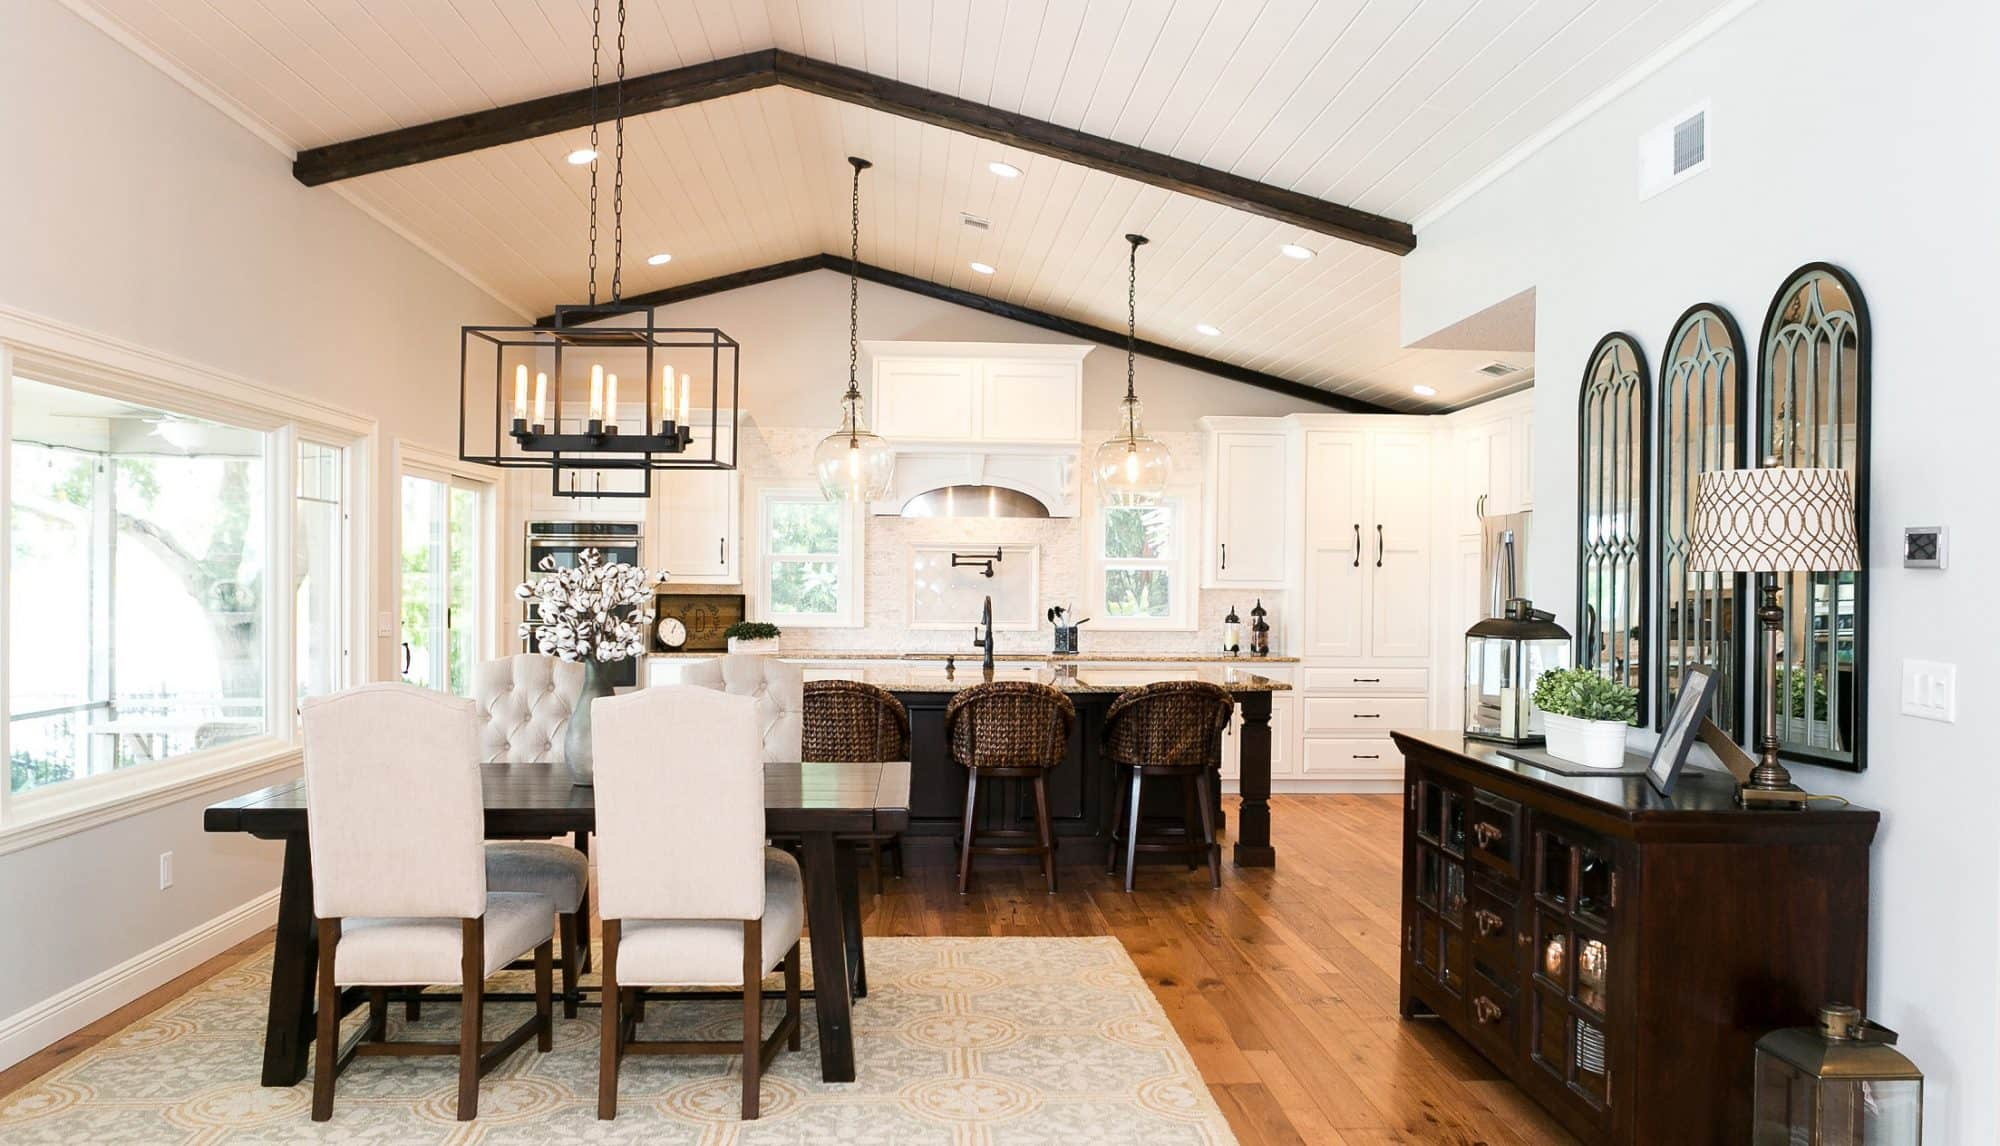 Lake-House-Kitchen-and-Dining-Room-Remodel-e1502824485977